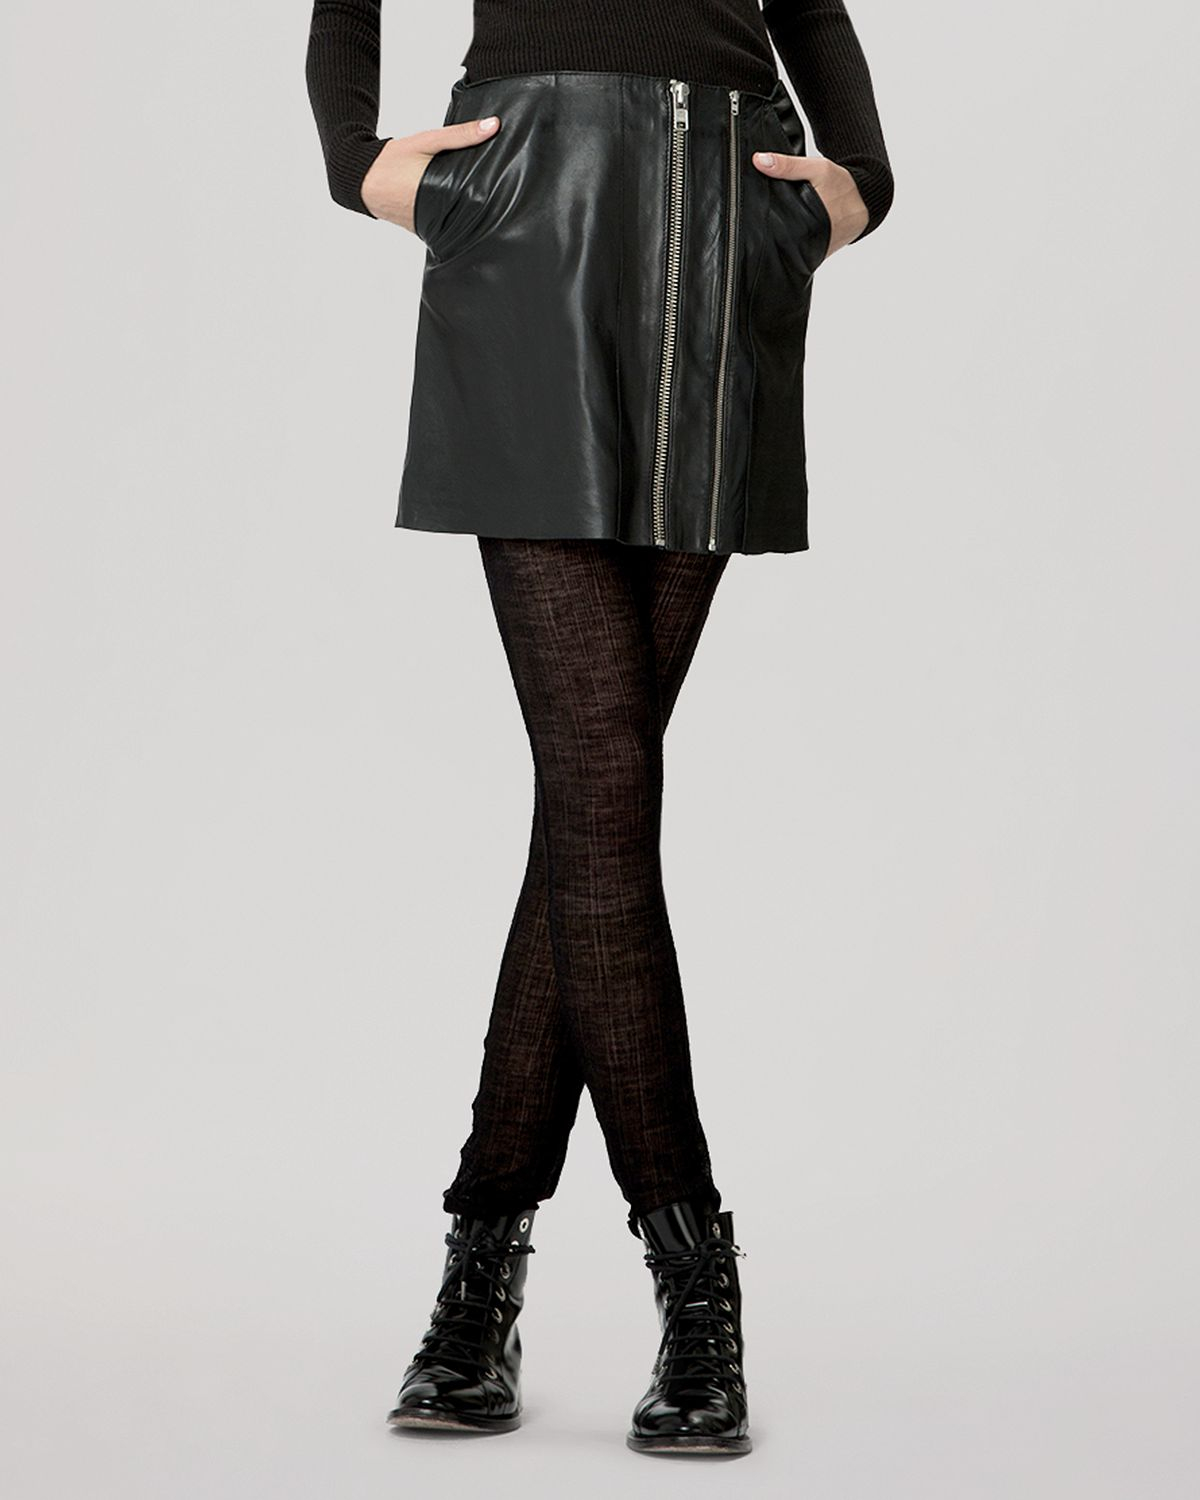 d3eeef8b4 Gallery. Previously sold at: Bloomingdale's · Women's Black Leather Skirts  ...